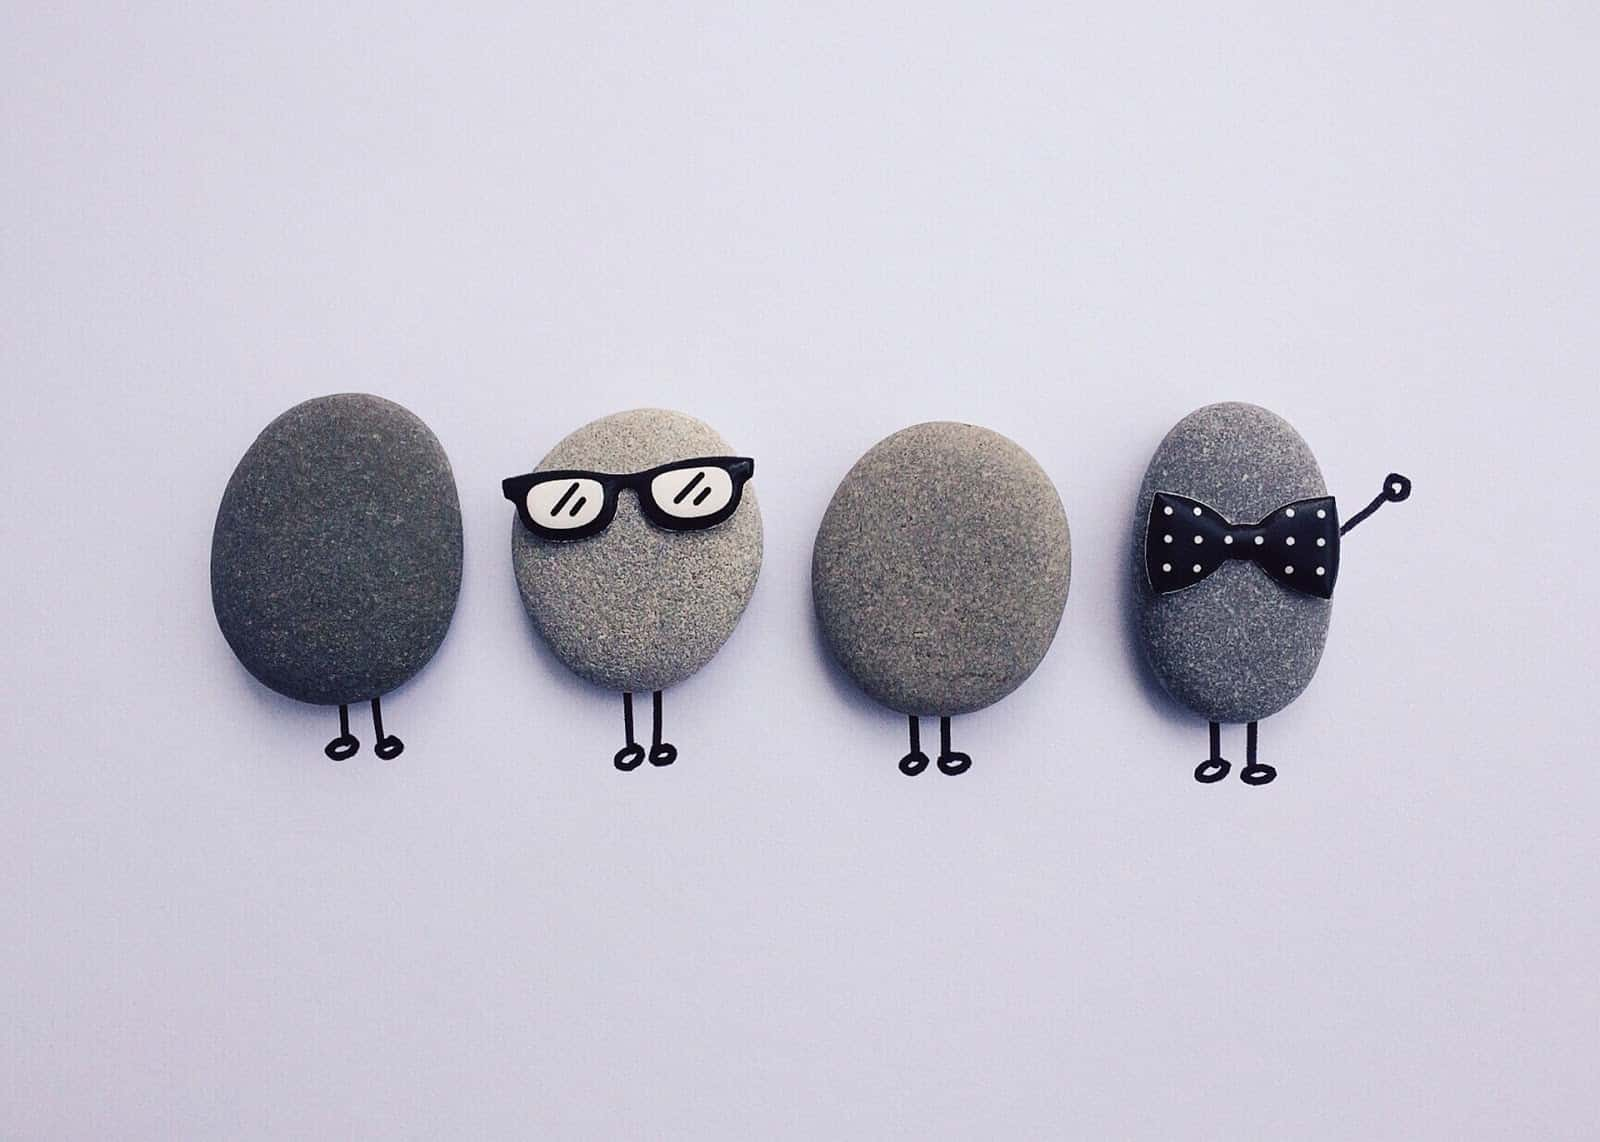 rocks in a line defining that creating an SaaS product requires a mix of different skills